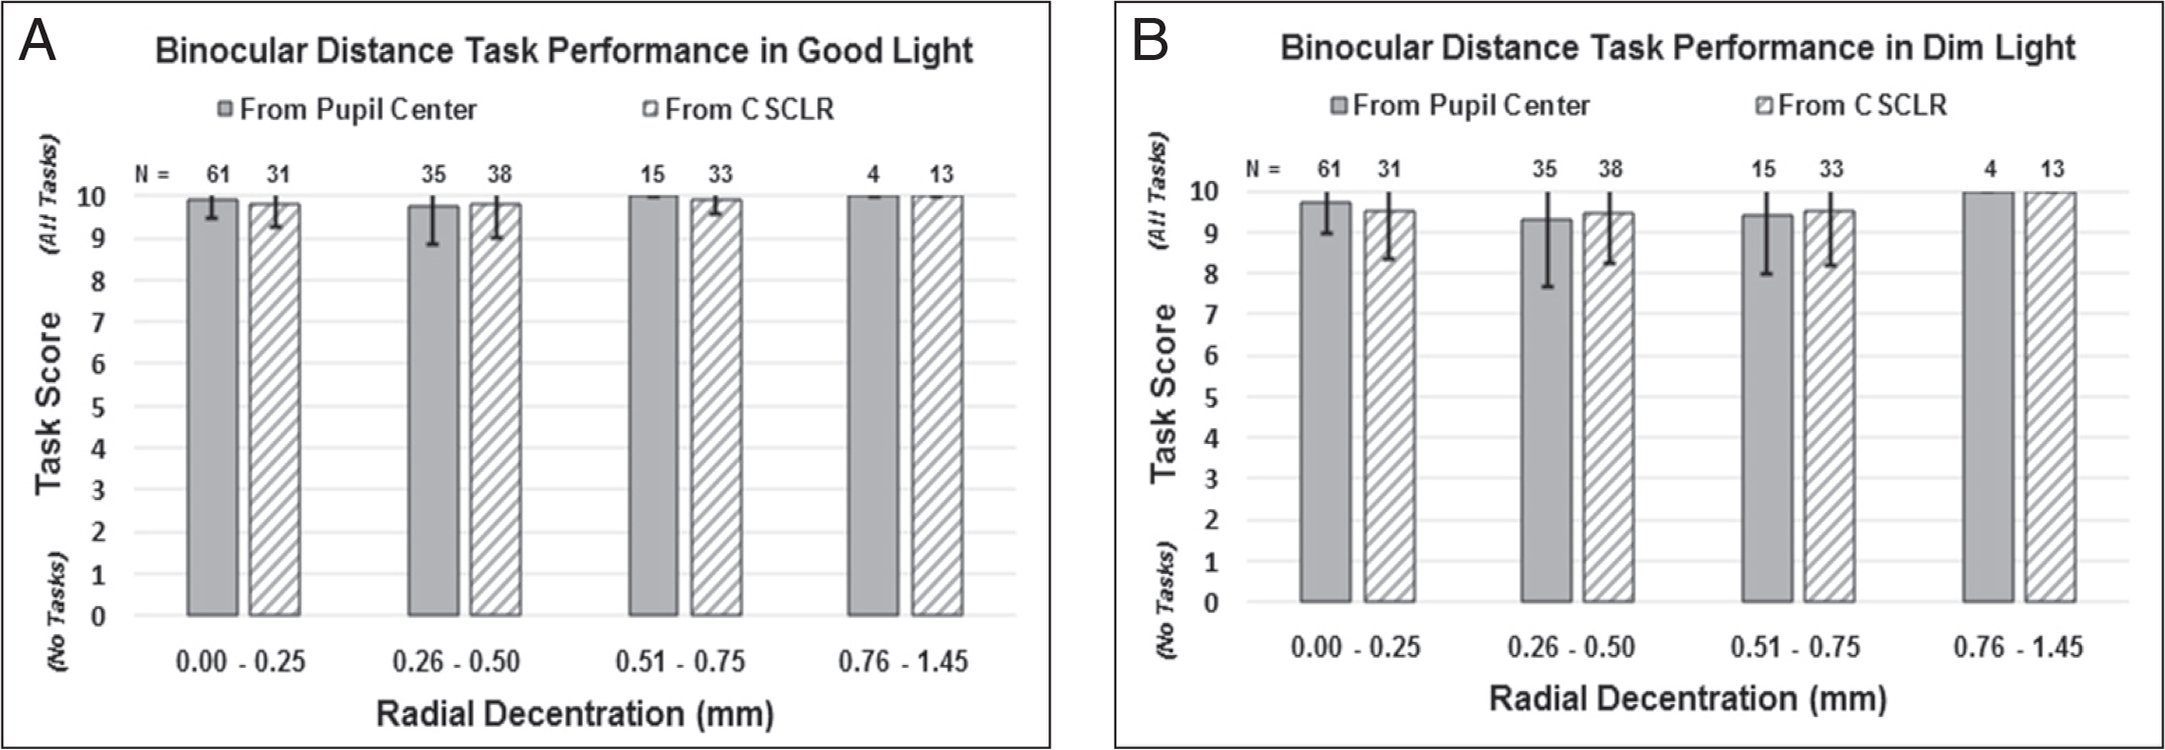 At the 3-month visit, binocular distance task performance in (A) good and (B) dim light as a function of inlay decentration with respect to the pupil center and coaxially sighted corneal light reflex (CSCLR). Error bars represent one standard deviation.